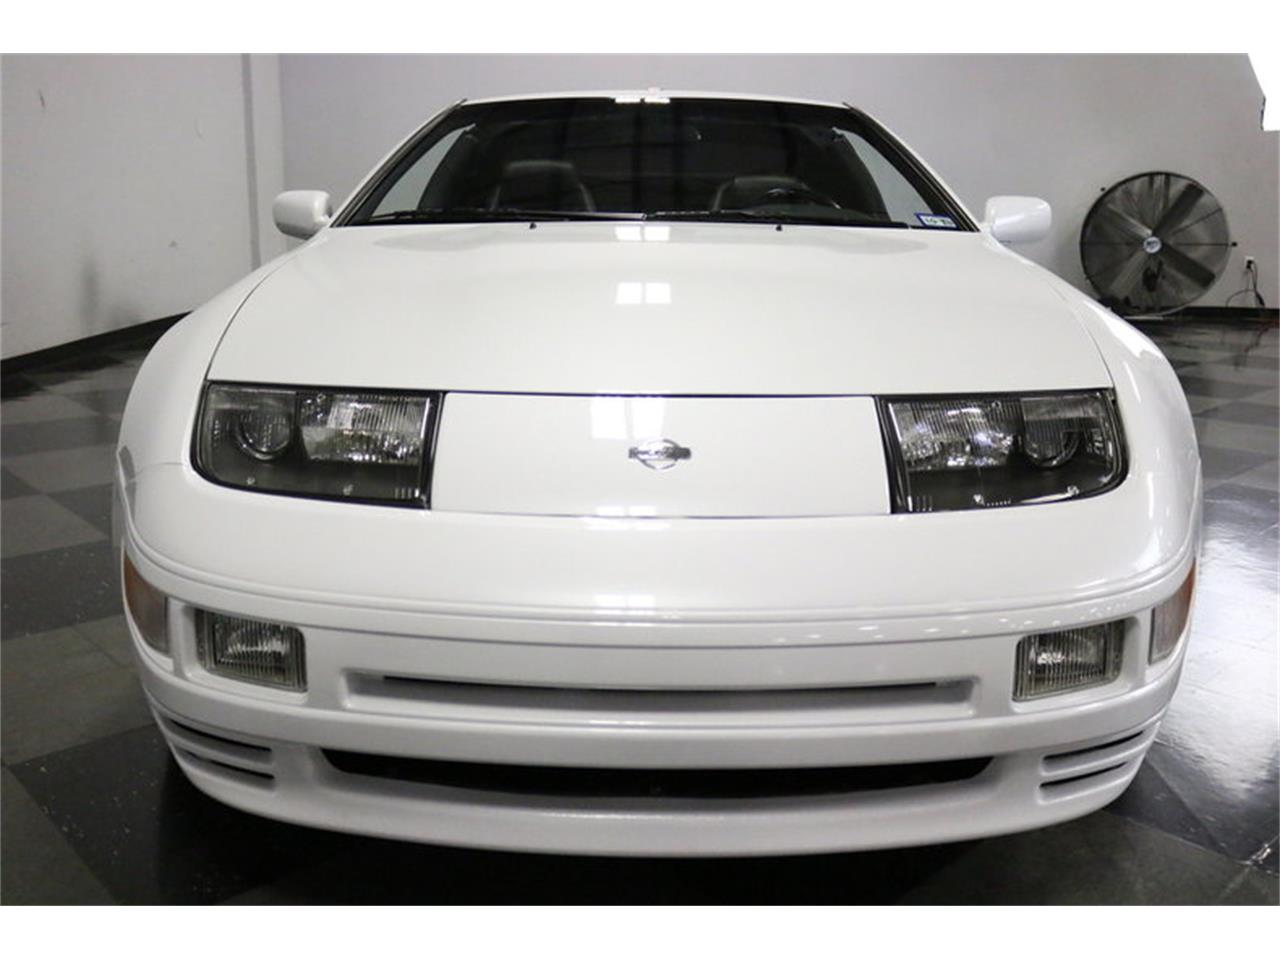 Large Picture of 1995 300ZX - $21,995.00 Offered by Streetside Classics - Dallas / Fort Worth - NIW7